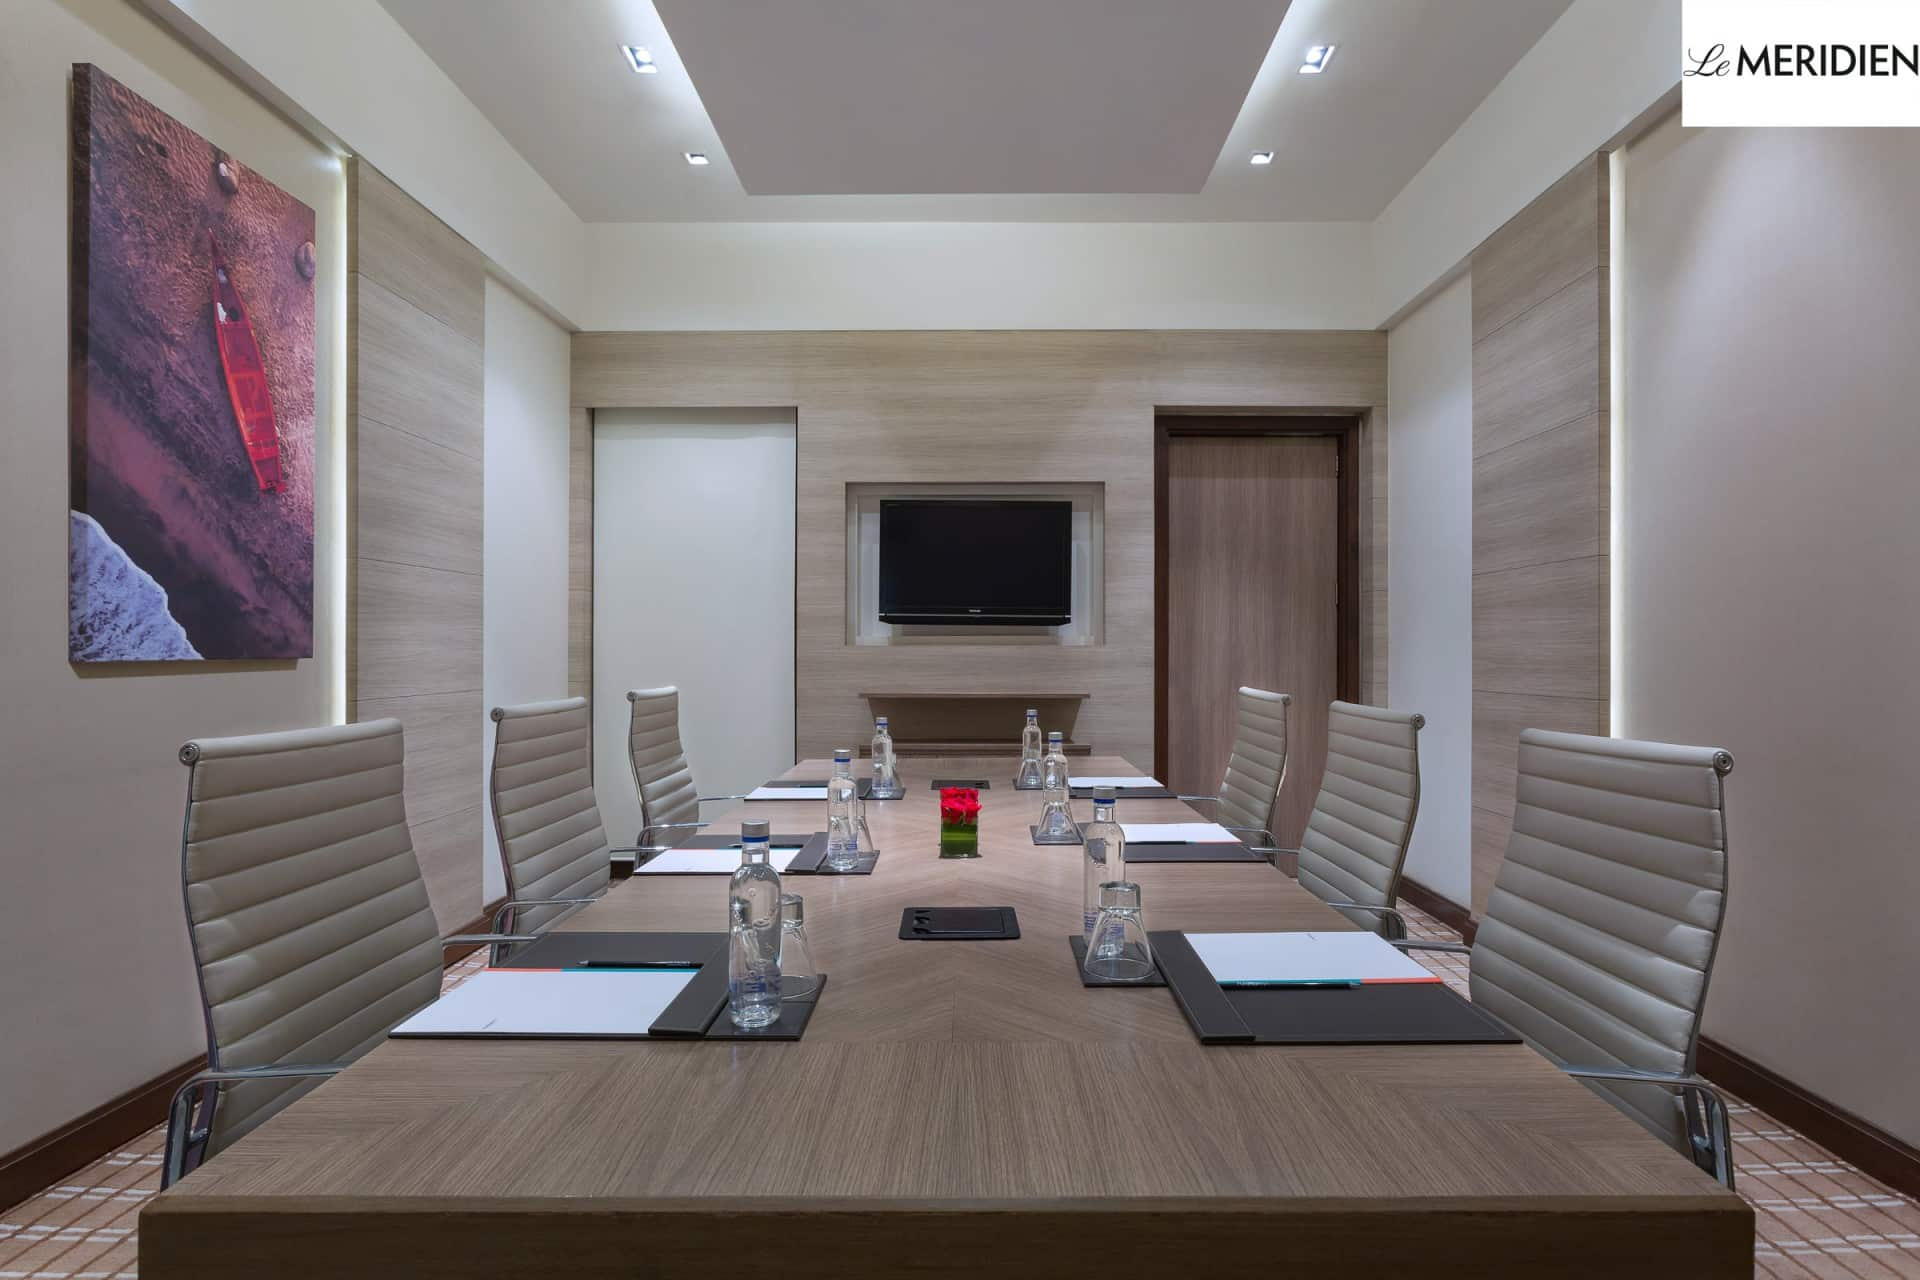 Best Architecture Photography New Delhi | Photography of Le-Meridien Conference Room Gurgaon